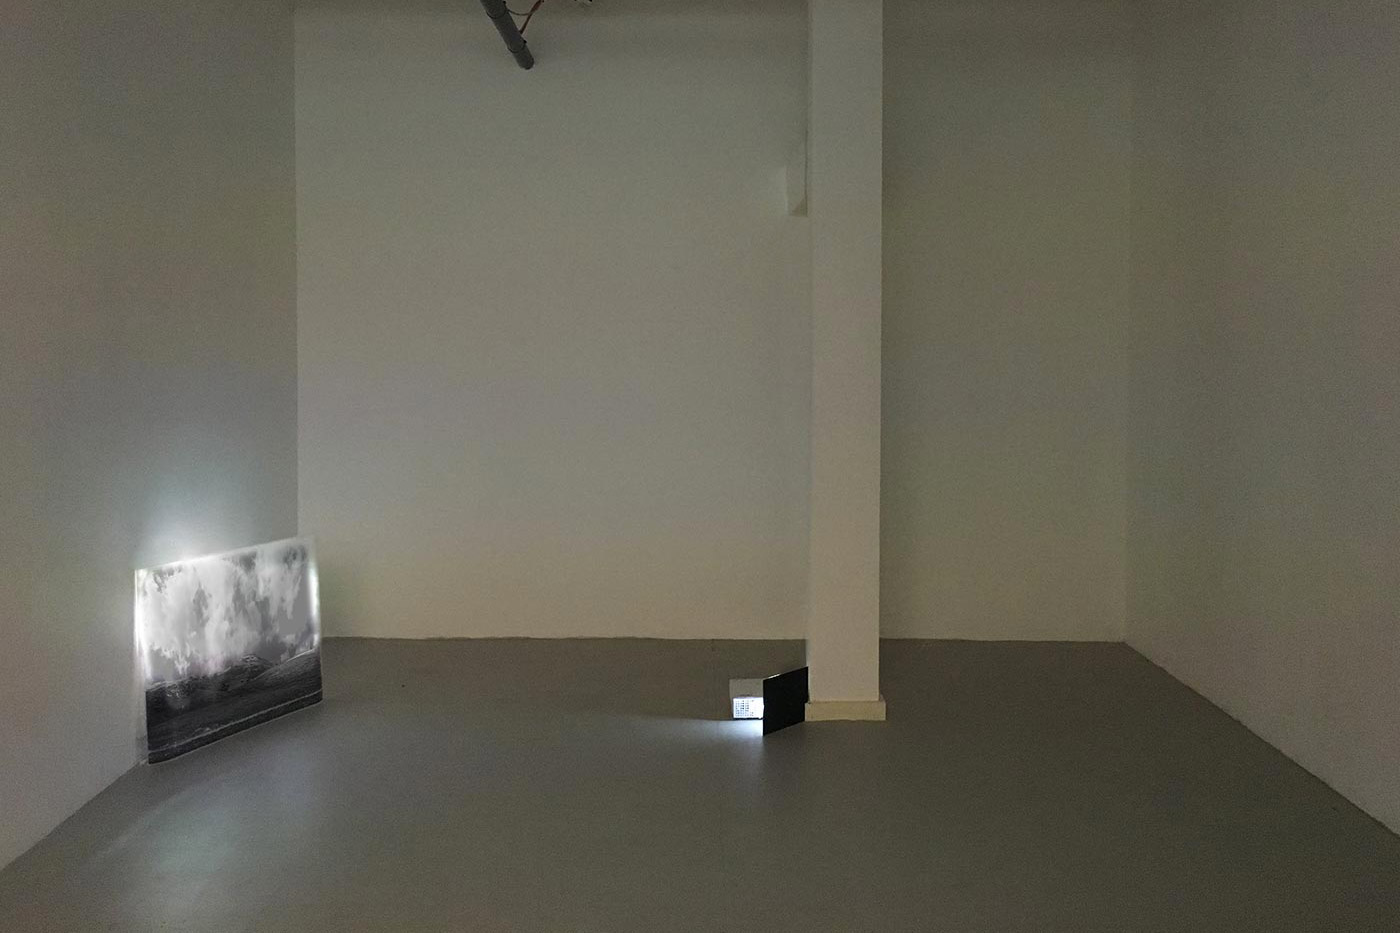 Installation view, Five Years gallery - London